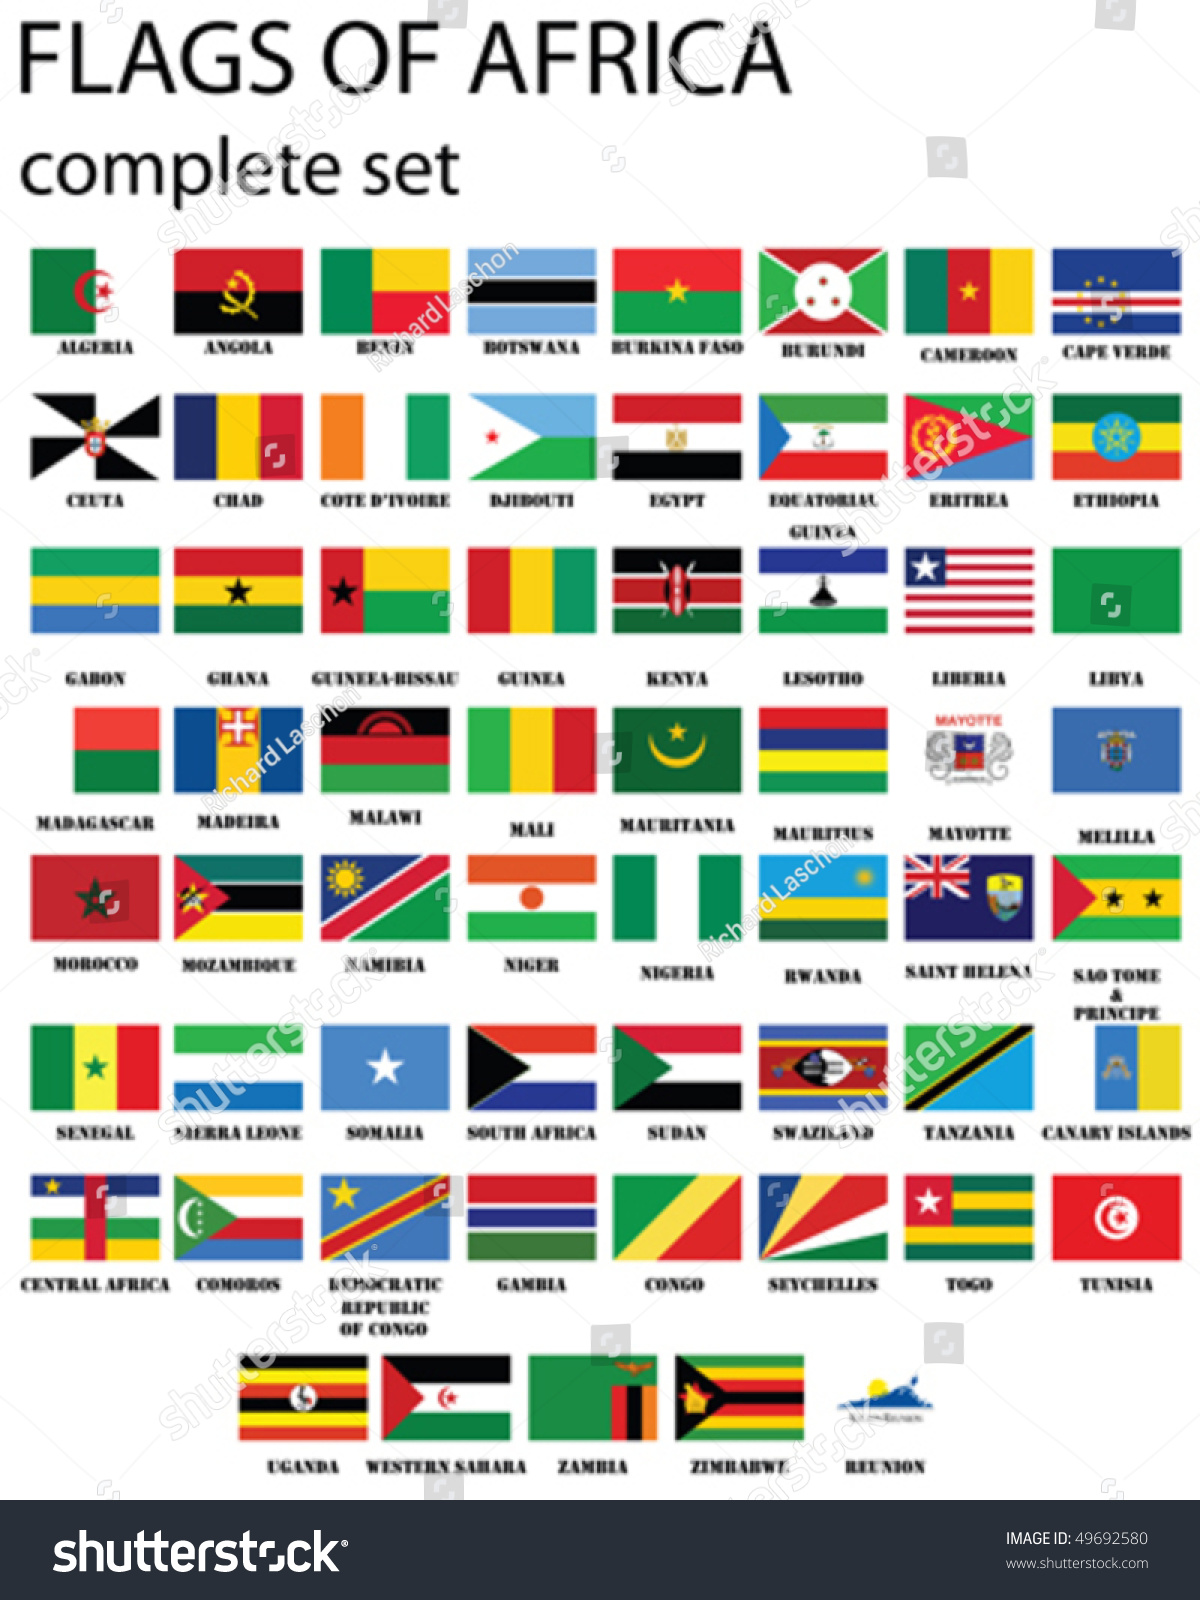 Flags Of Africa  Complete Set Of Flags In Original Colors Over White  Background